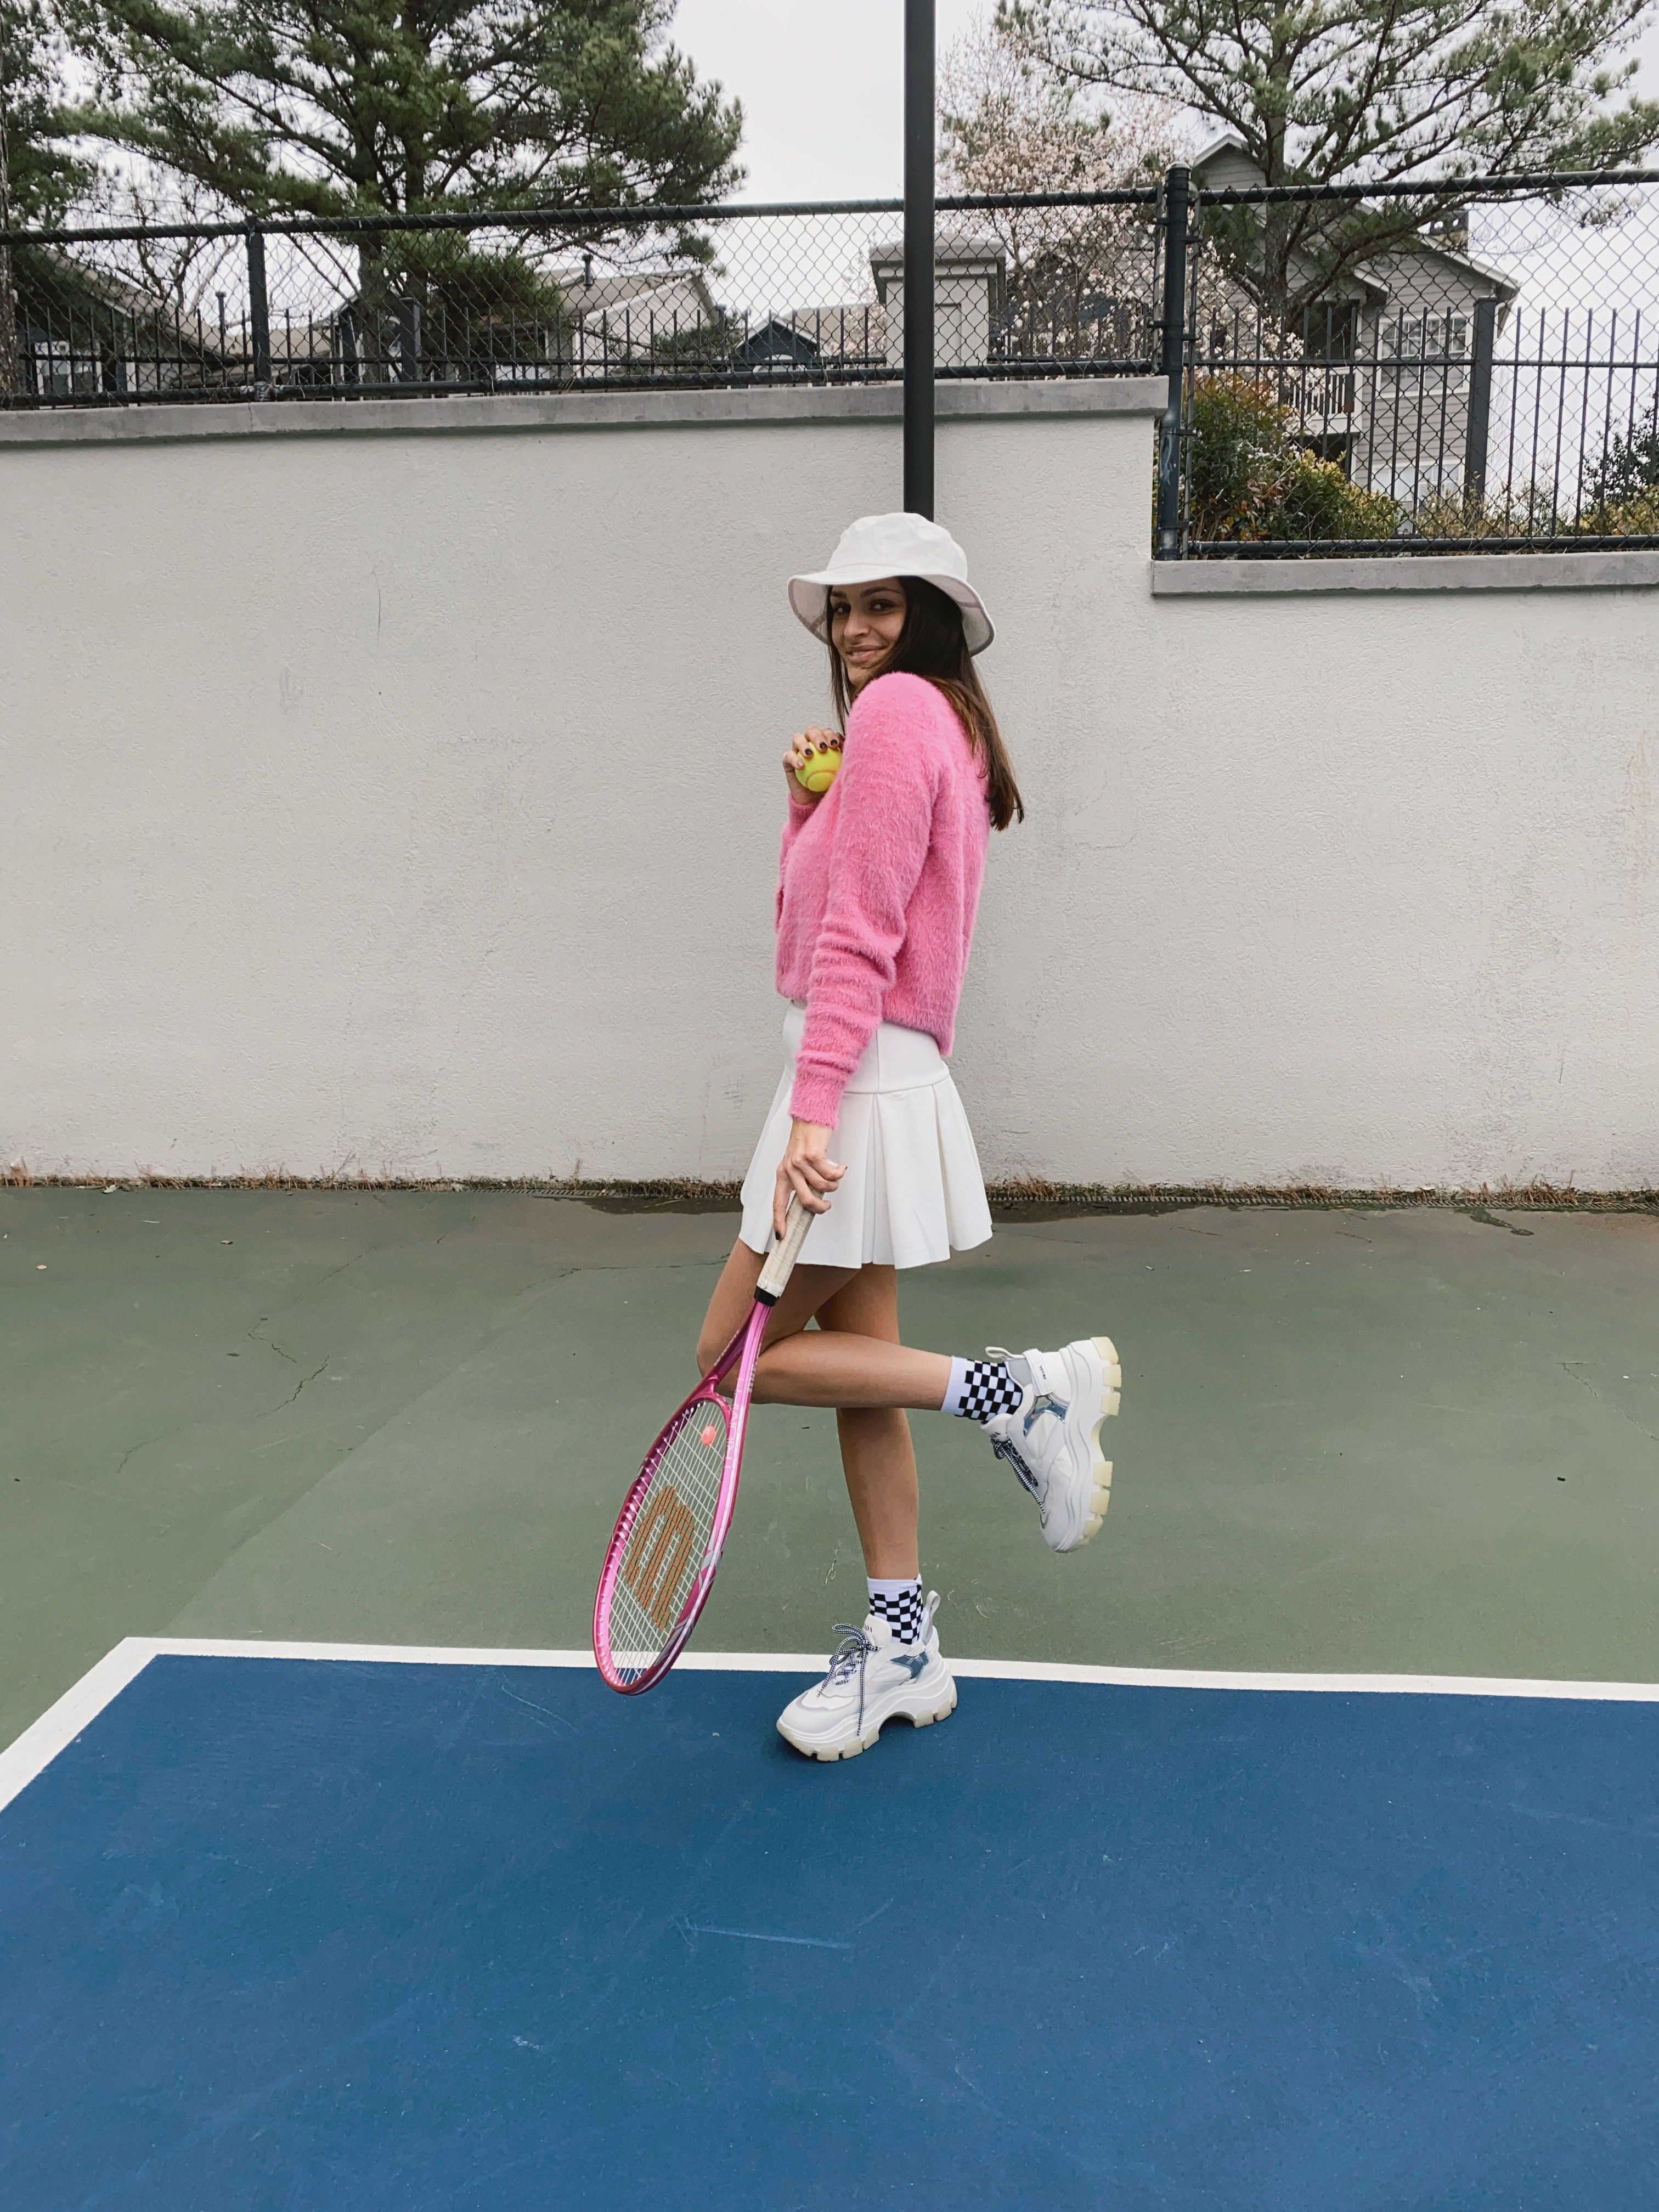 Tennis Outfit Spring Outfit Inspiration In 2020 Tennis Outfit Women Tennis Clothes Tennis Skirt Outfit